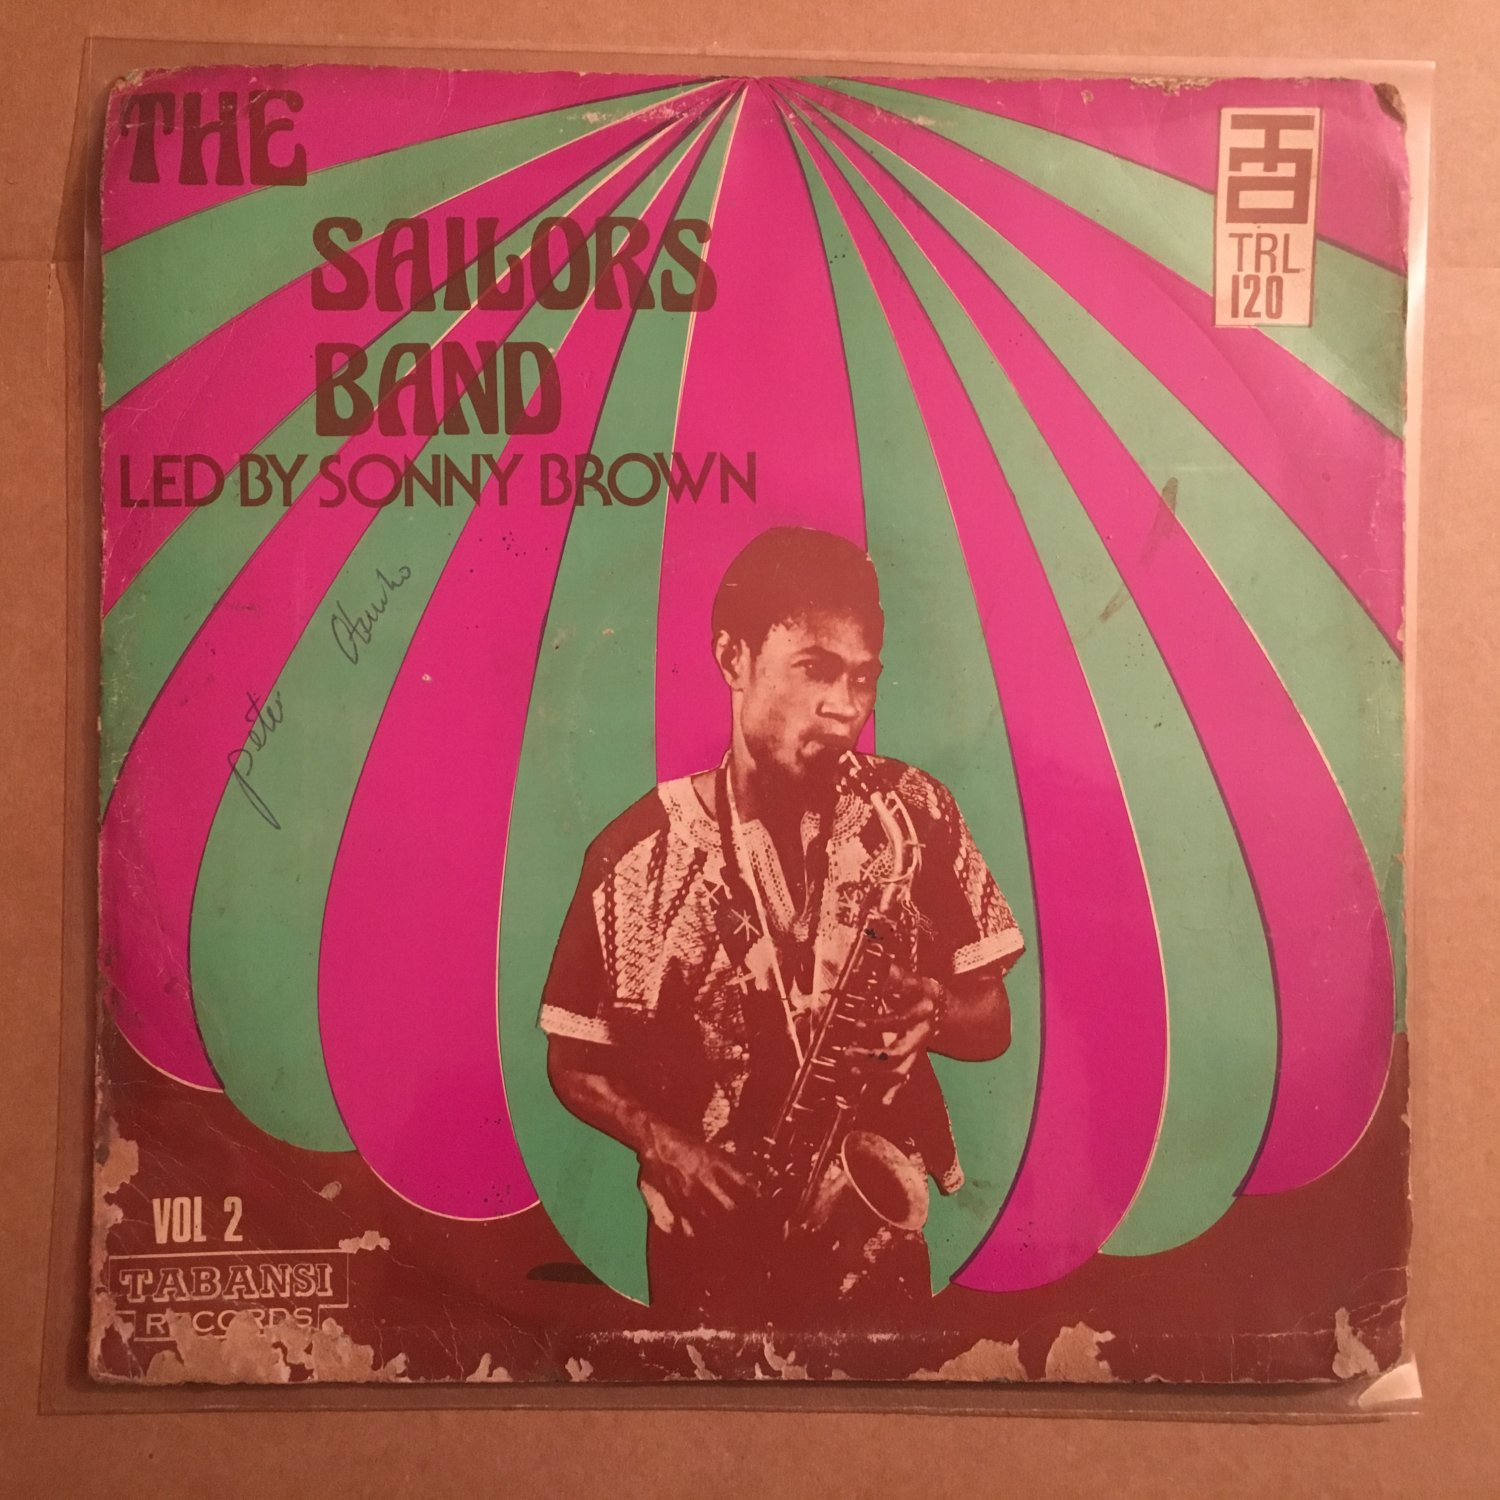 SONNY BROWN & HIS SAILORS BAND LP vol 2 NIGERIA HIGHLIFE mp3 LISTEN